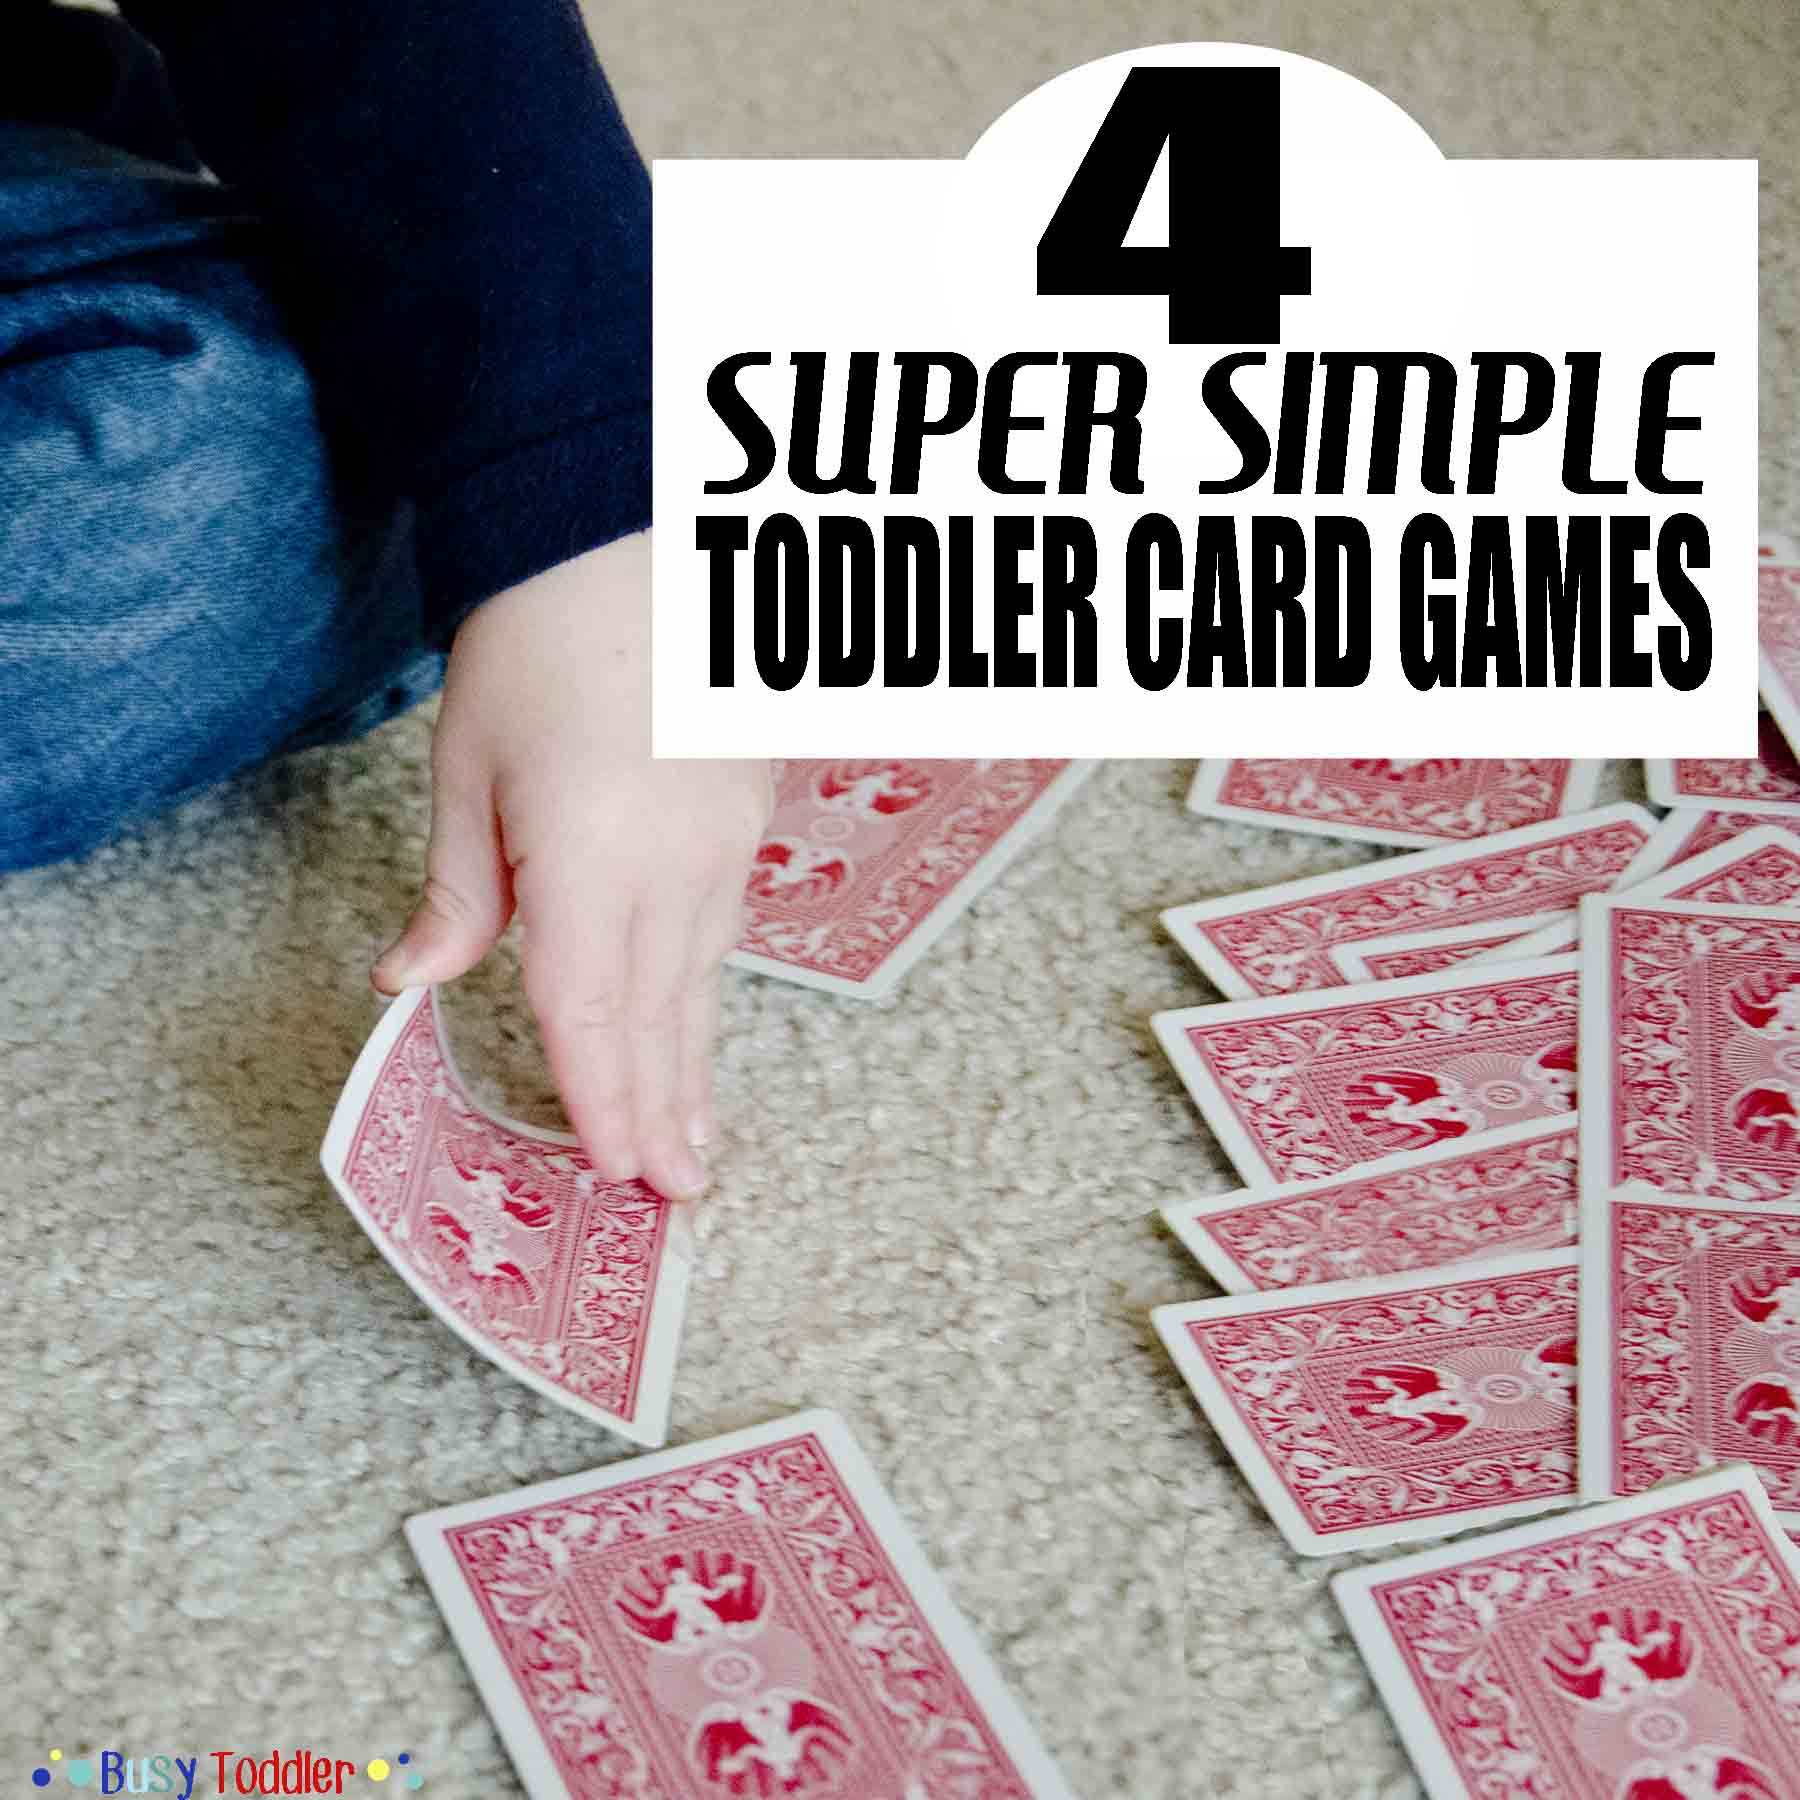 TODDLER CARD GAMES: Four simple card games for toddlers to play